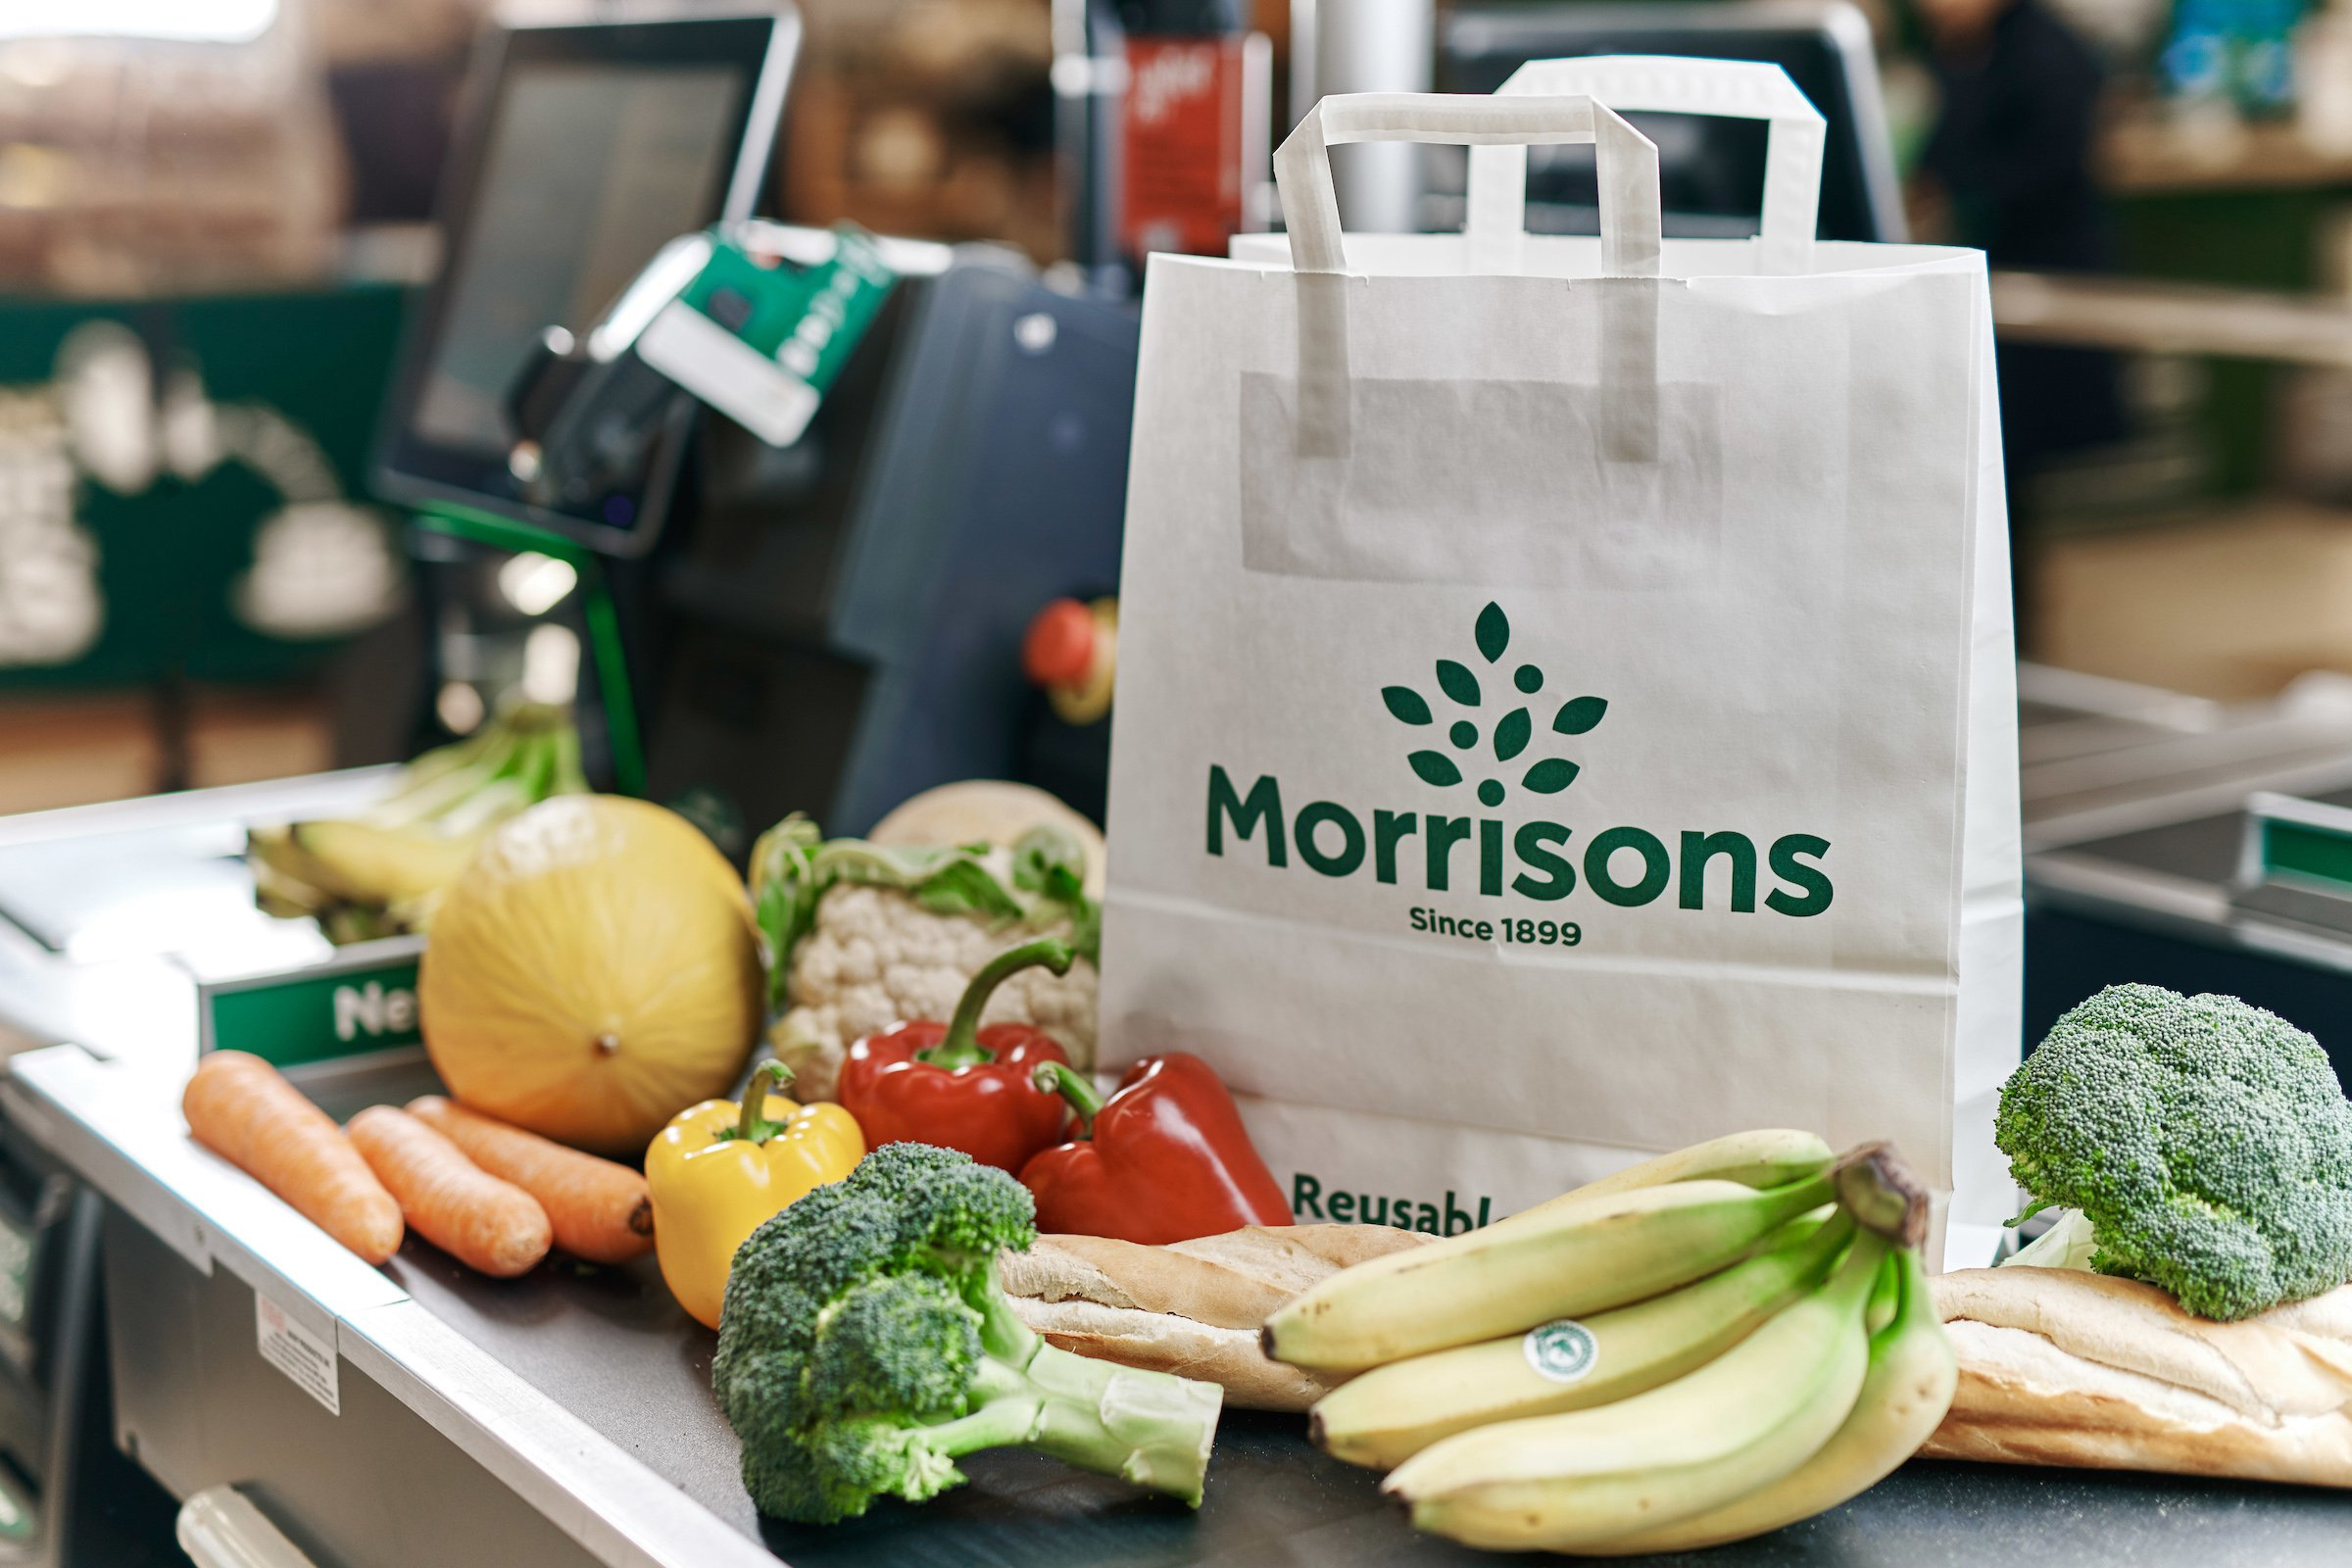 Morrisons is offering customers paper carrier bags instead of plastic in all stores